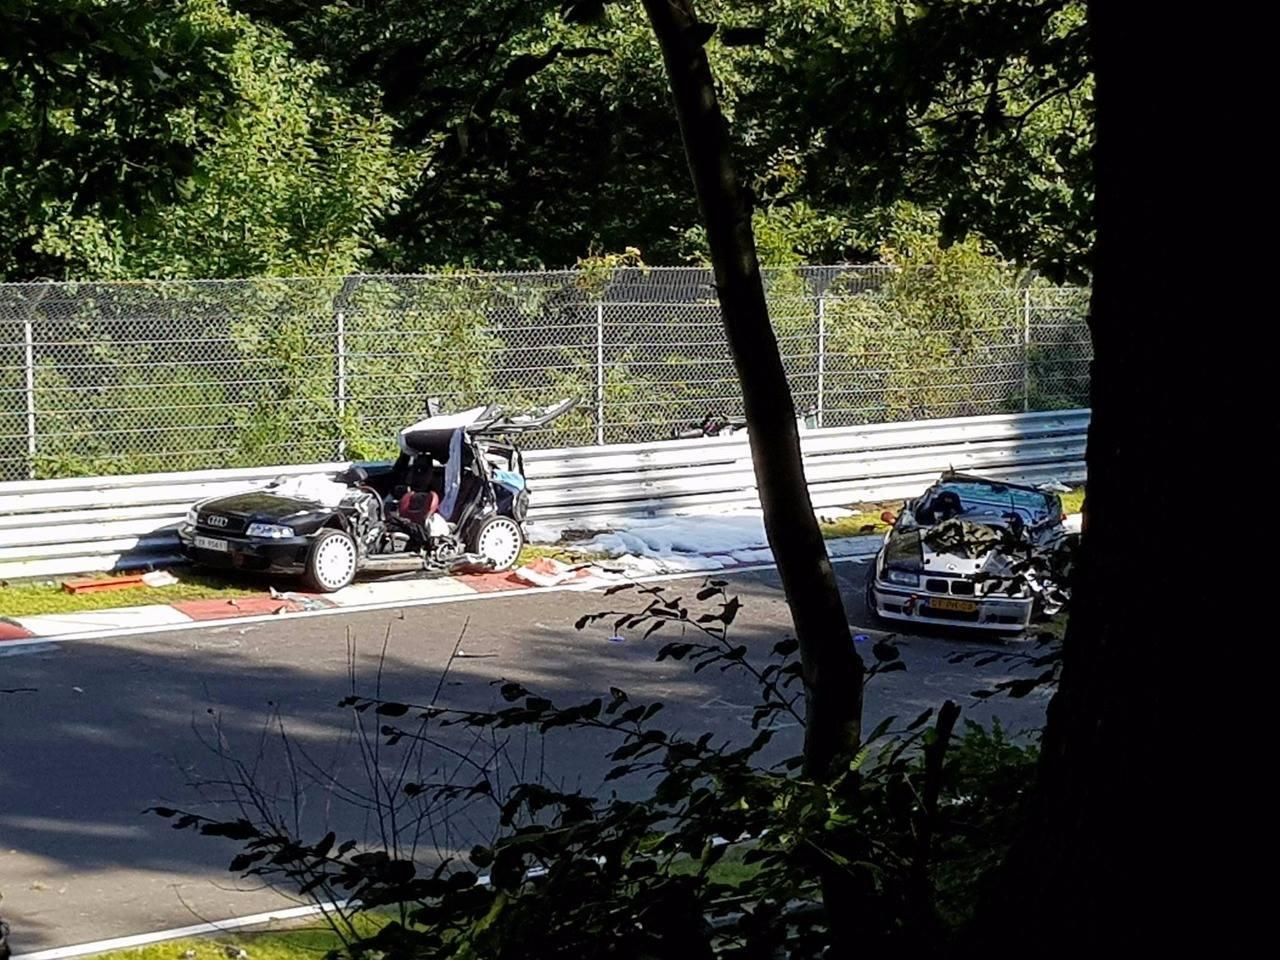 Nurburgring crash august 2017 (15)